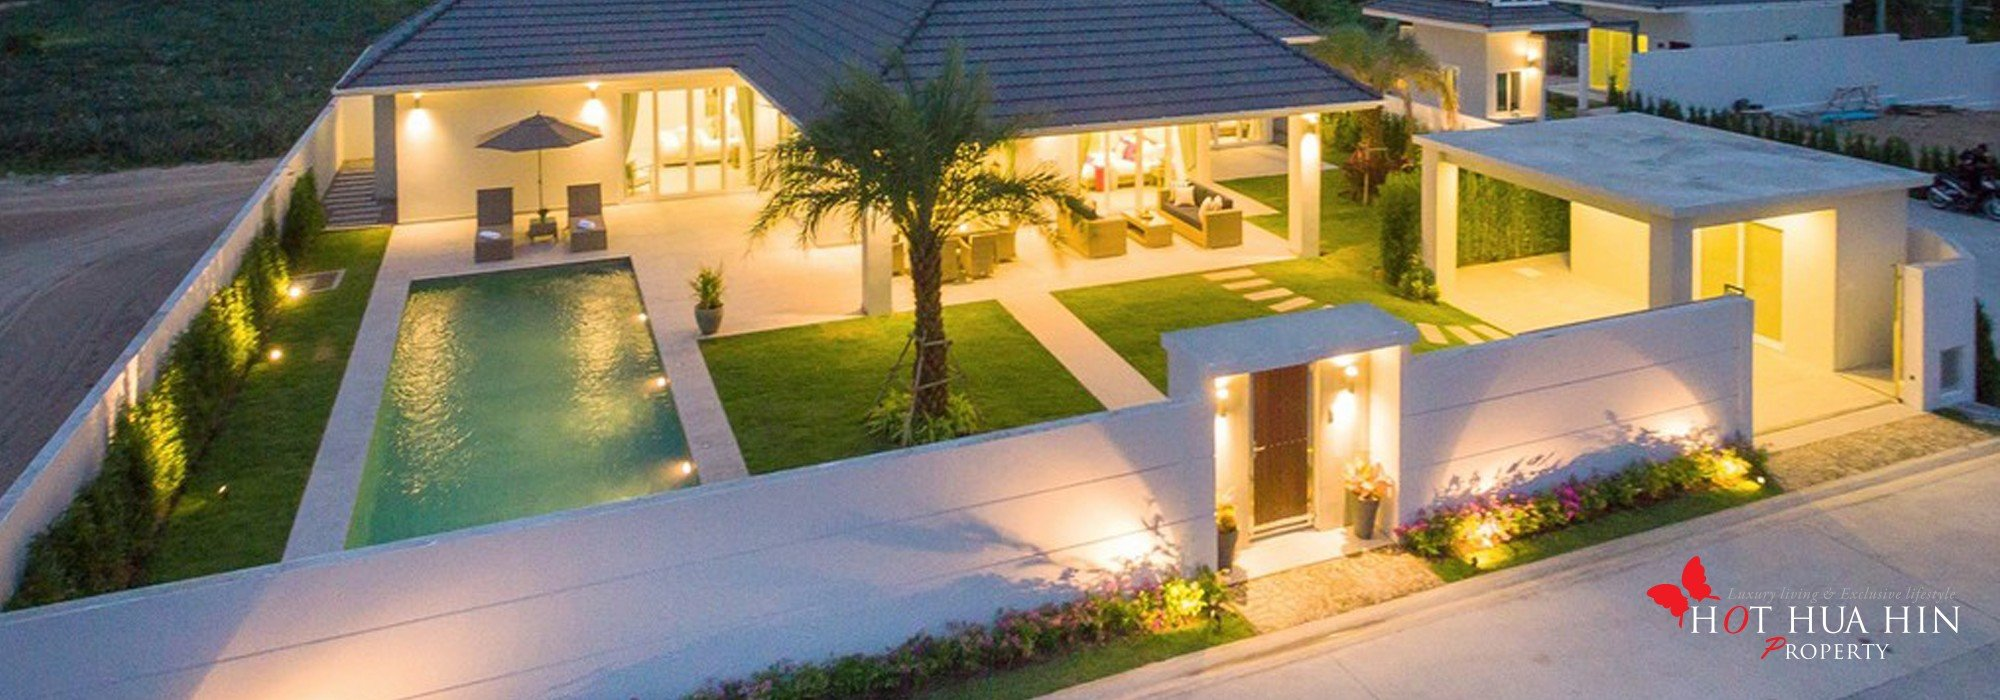 Baan Phu Thara, Hua Hin's fullest featured development